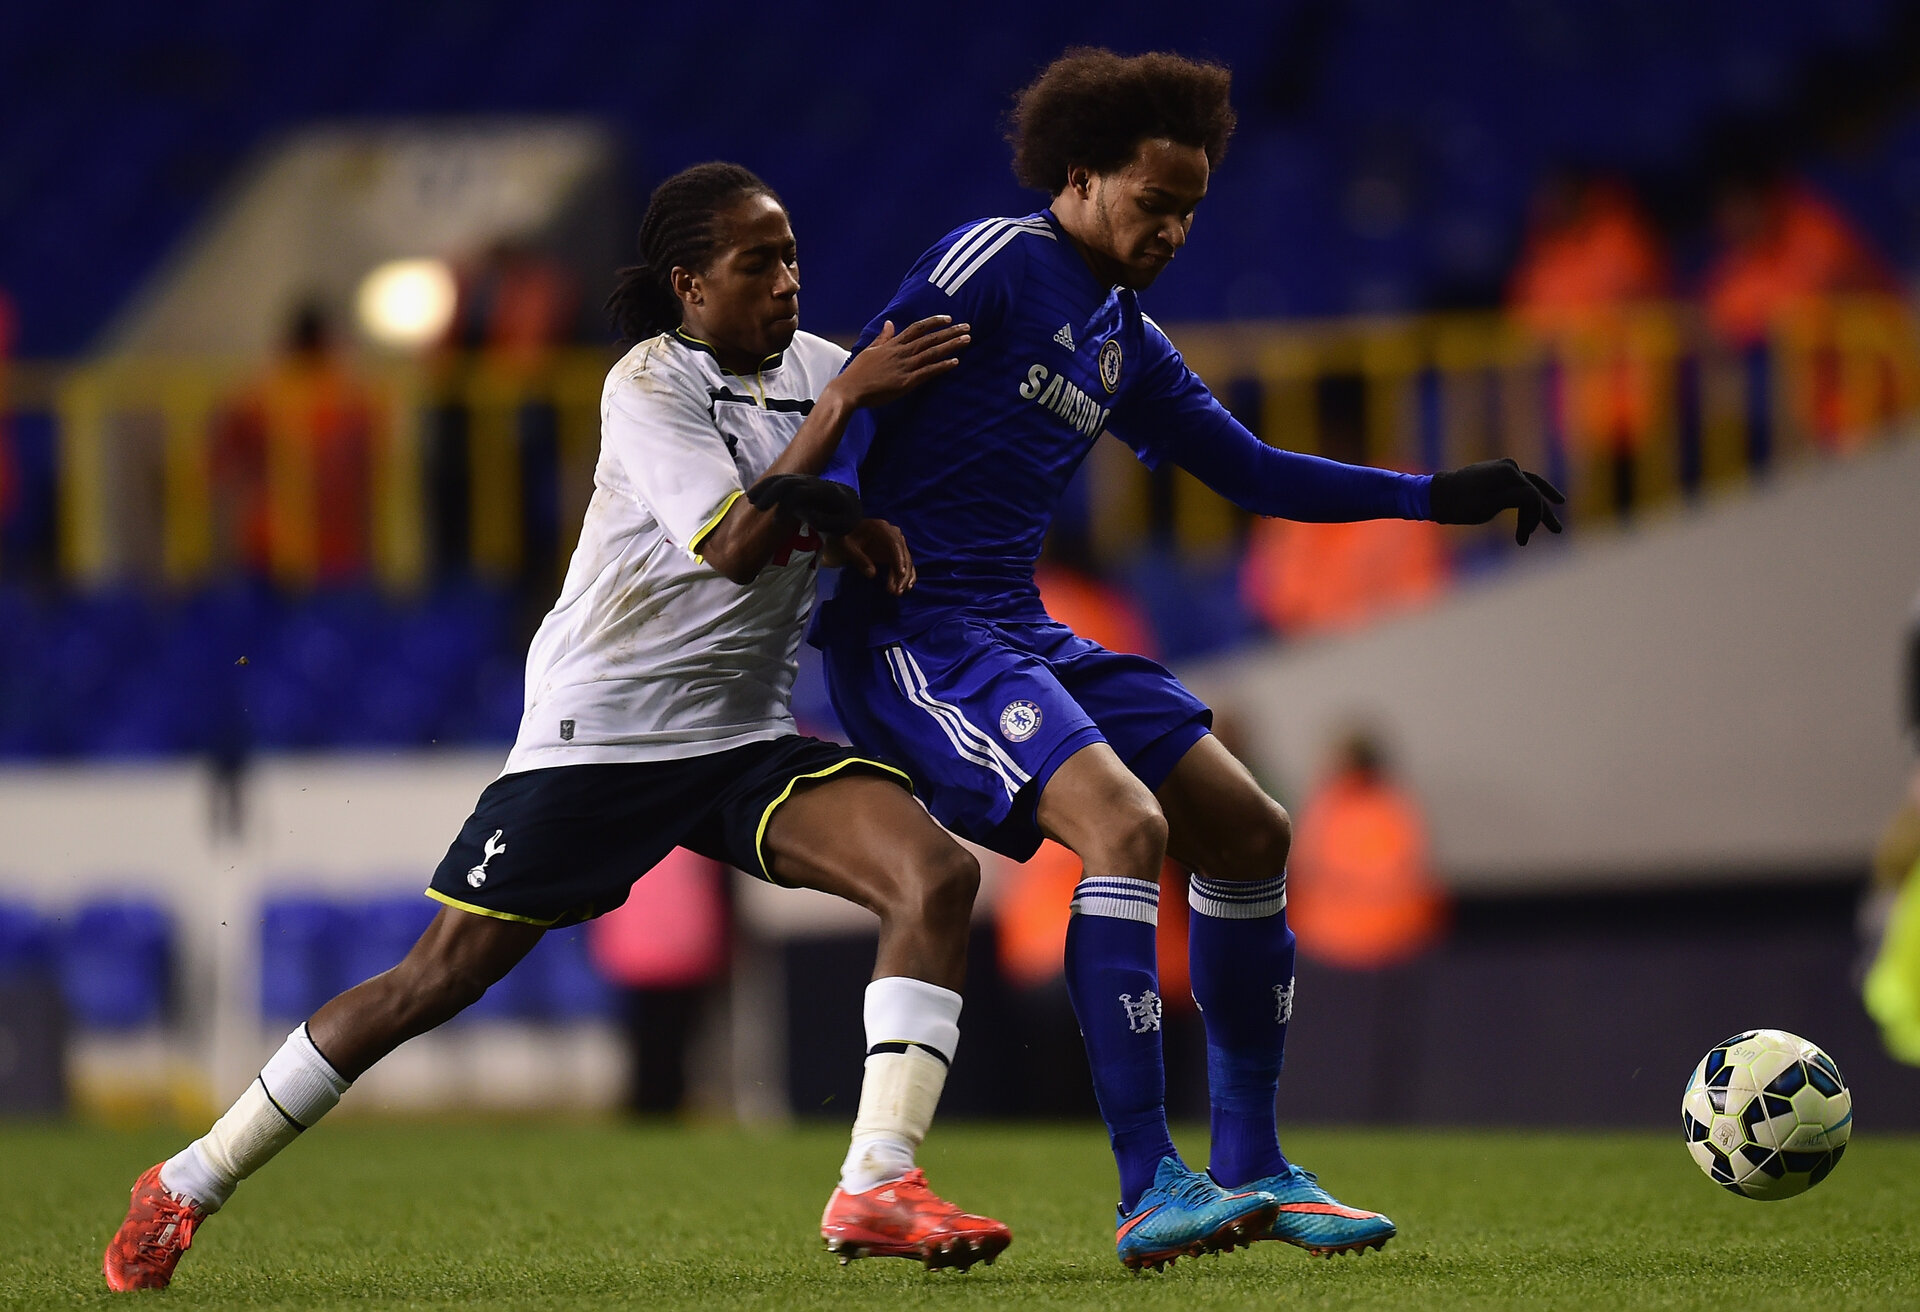 LONDON, ENGLAND - MARCH 05:  Isaiah Brown of Chelsea battles with Kyle Walker-Peters of Spurs during the FA Youth Cup Semi Final, first leg match between Tottenham Hotspur and Chelsea at White Hart Lane on March 5, 2015 in London, England.  (Photo by Jamie McDonald/Getty Images)